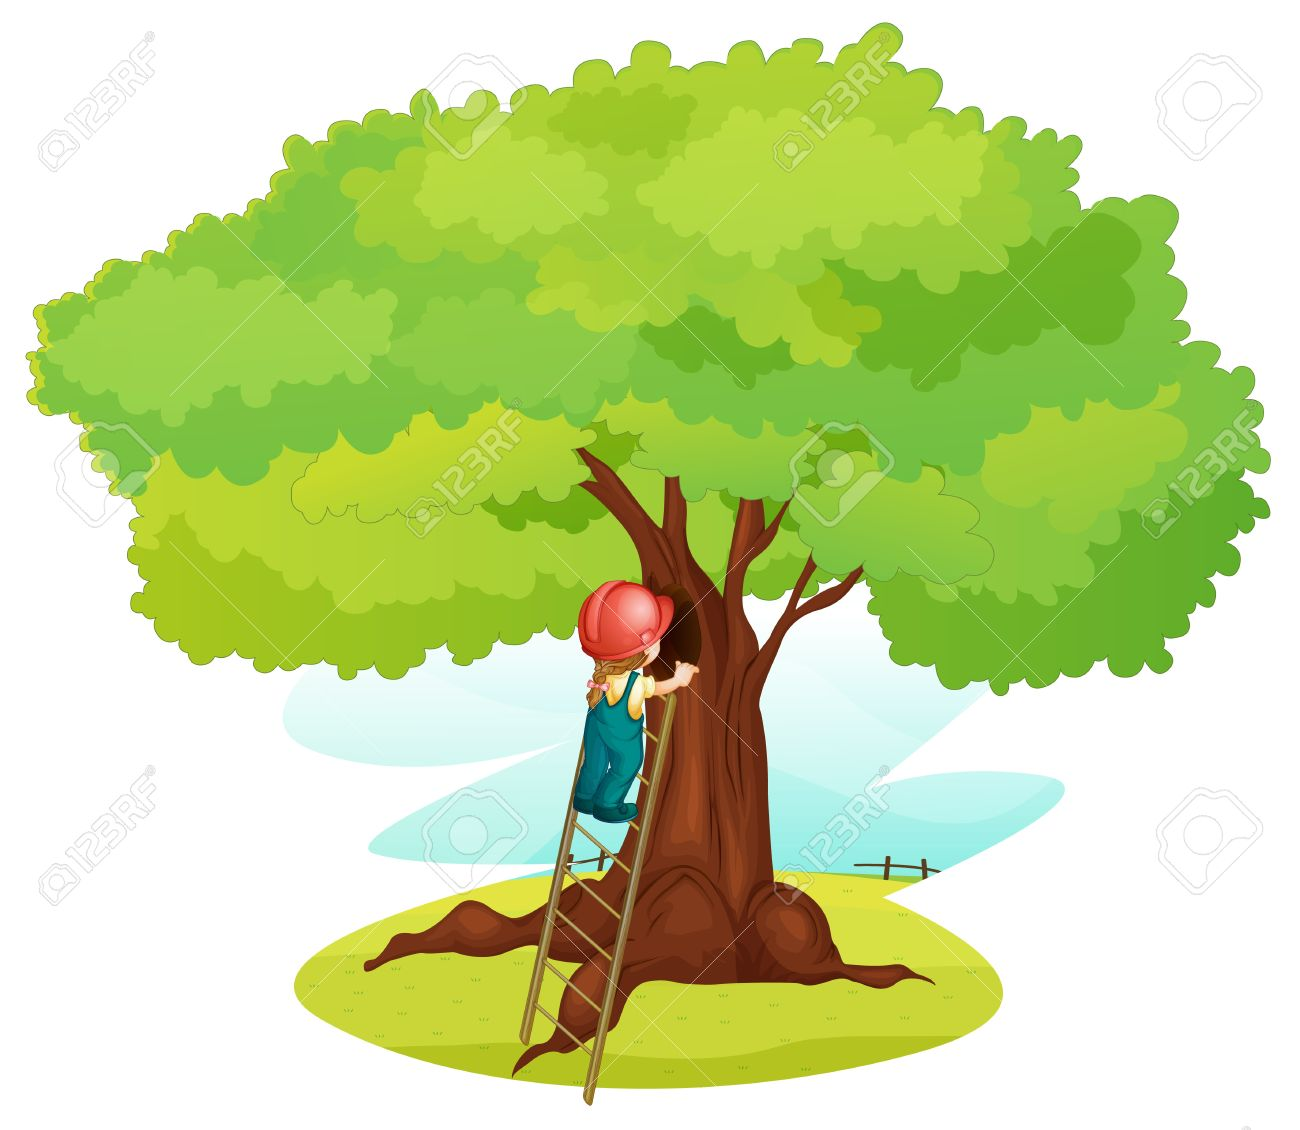 illustration of a boy and ladder under tree Stock Vector - 14347169